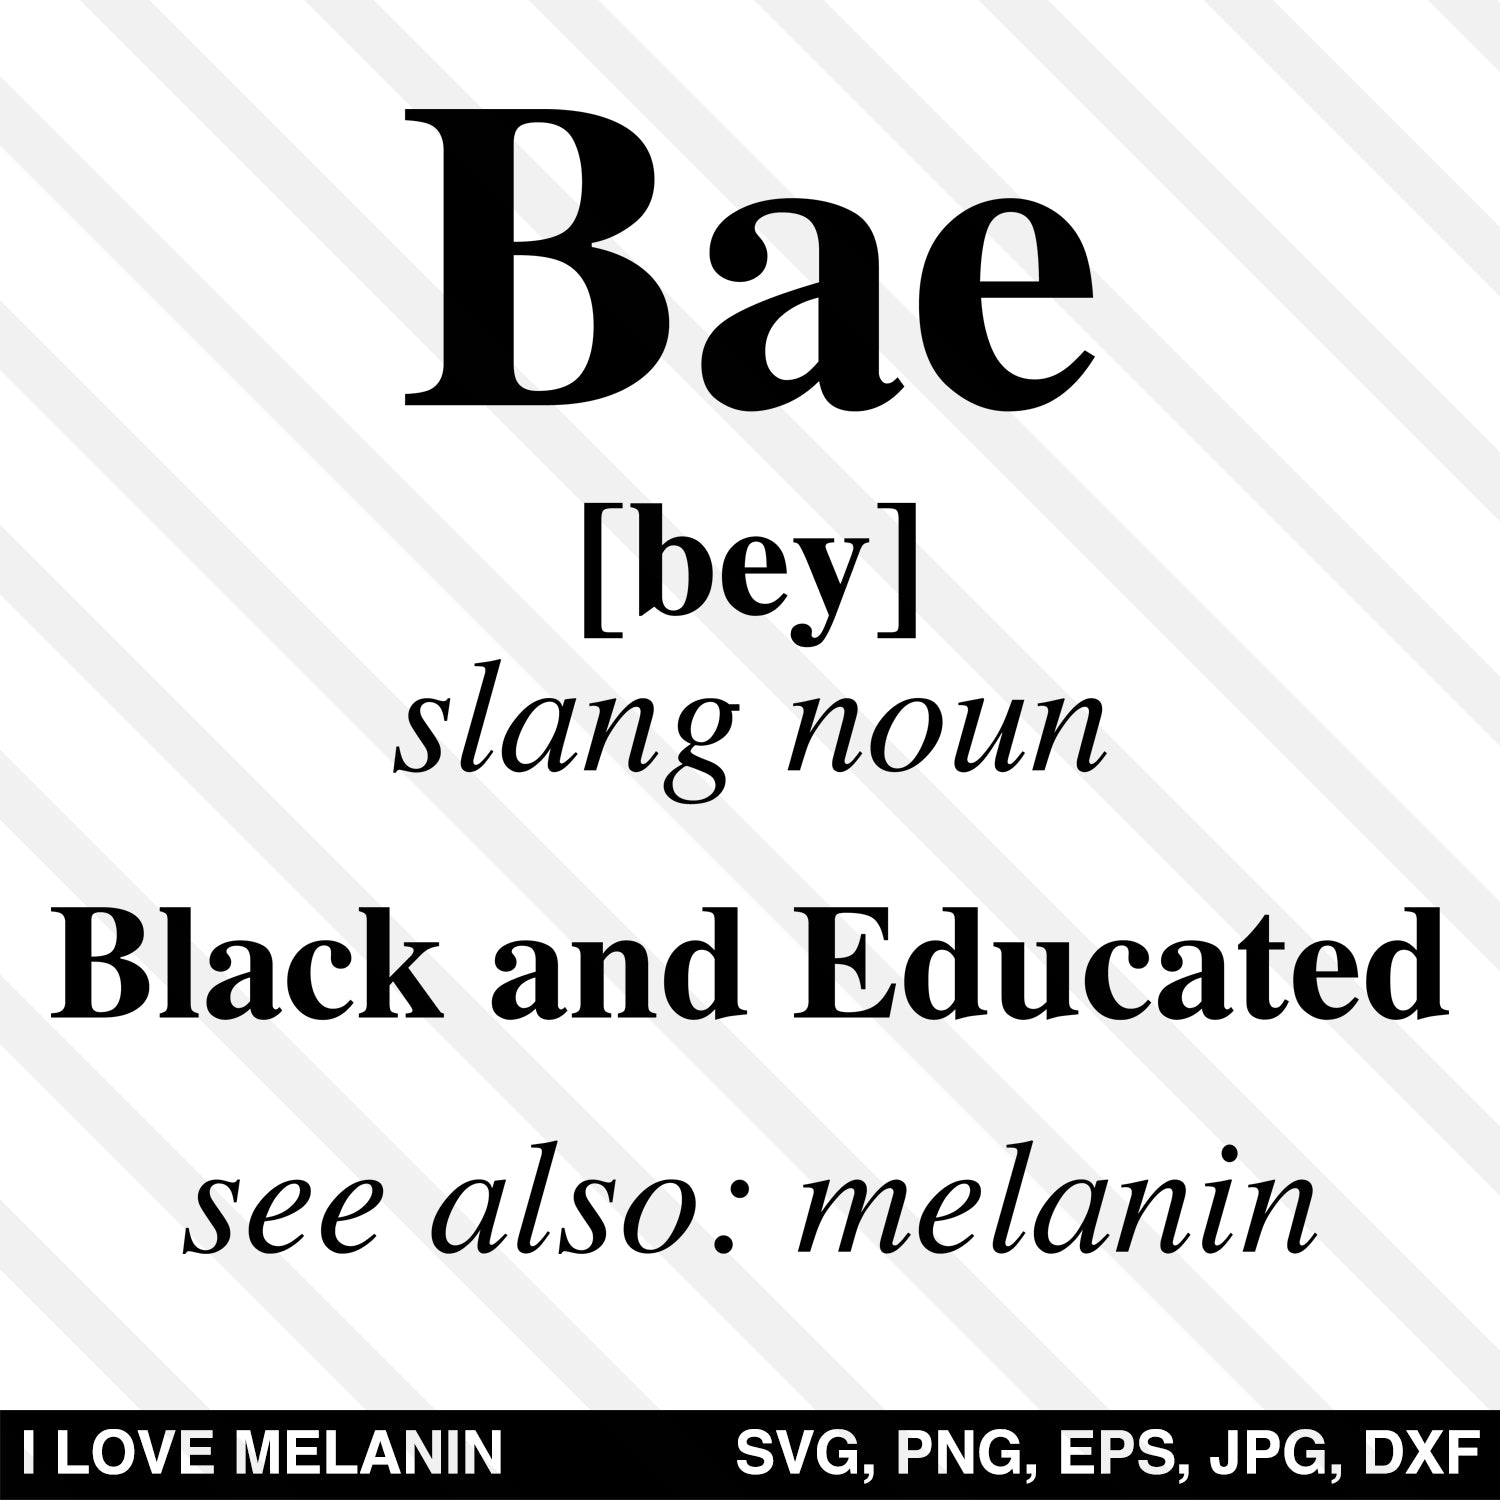 BAE Black And Educated Definition SVG